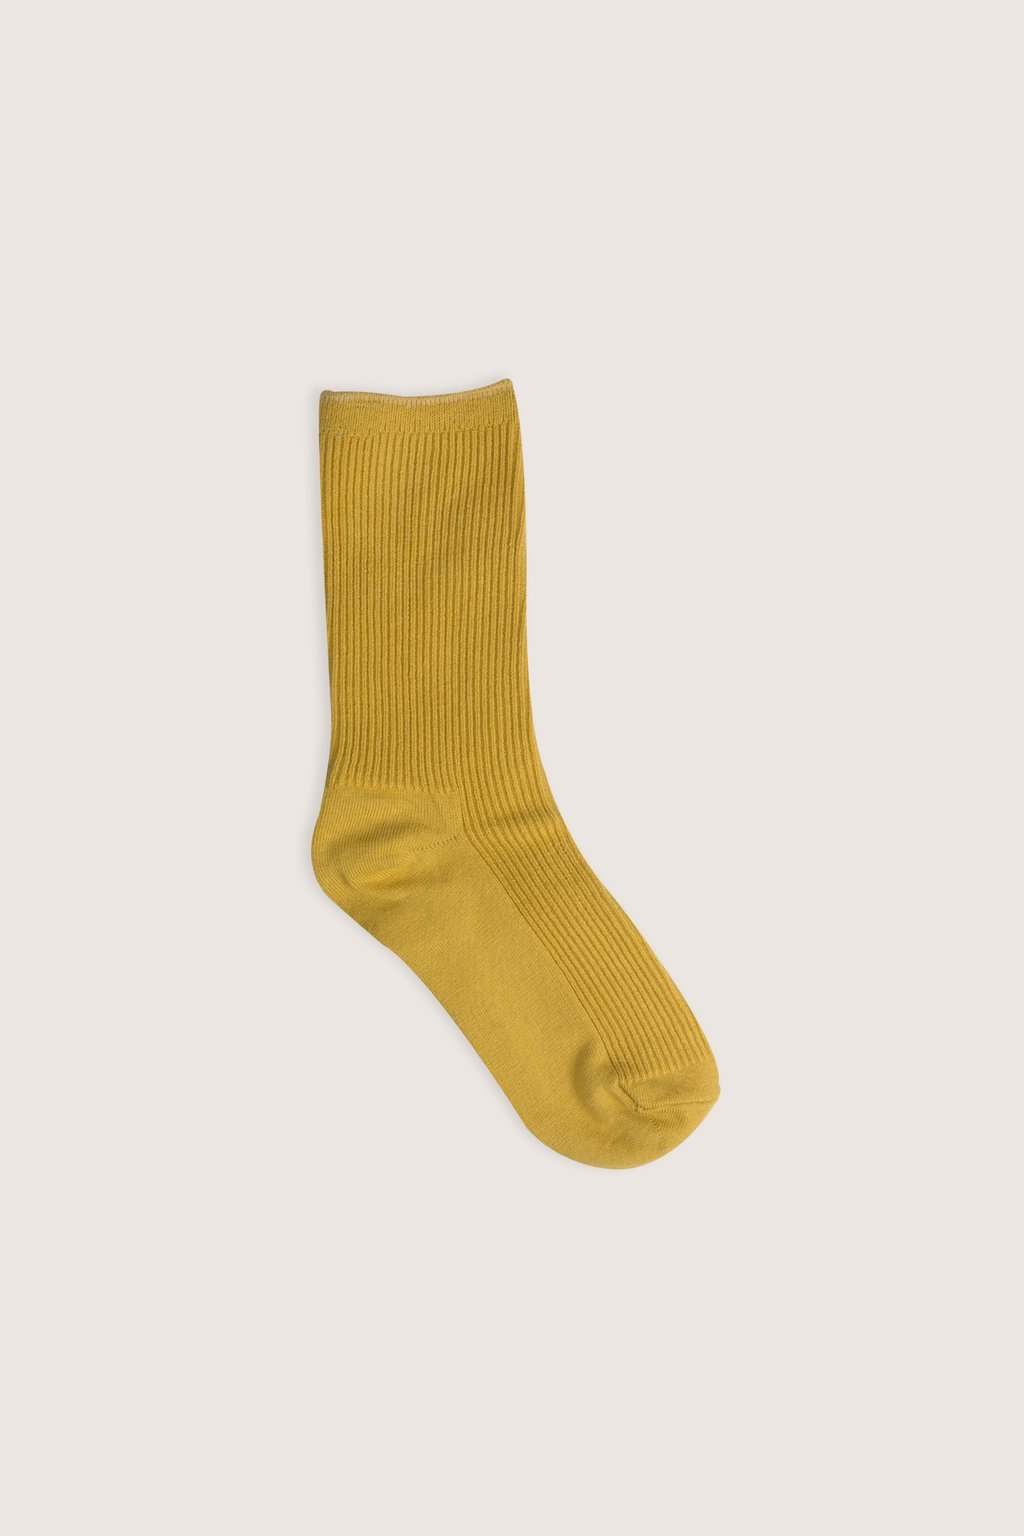 Sock H030 Yellow 4